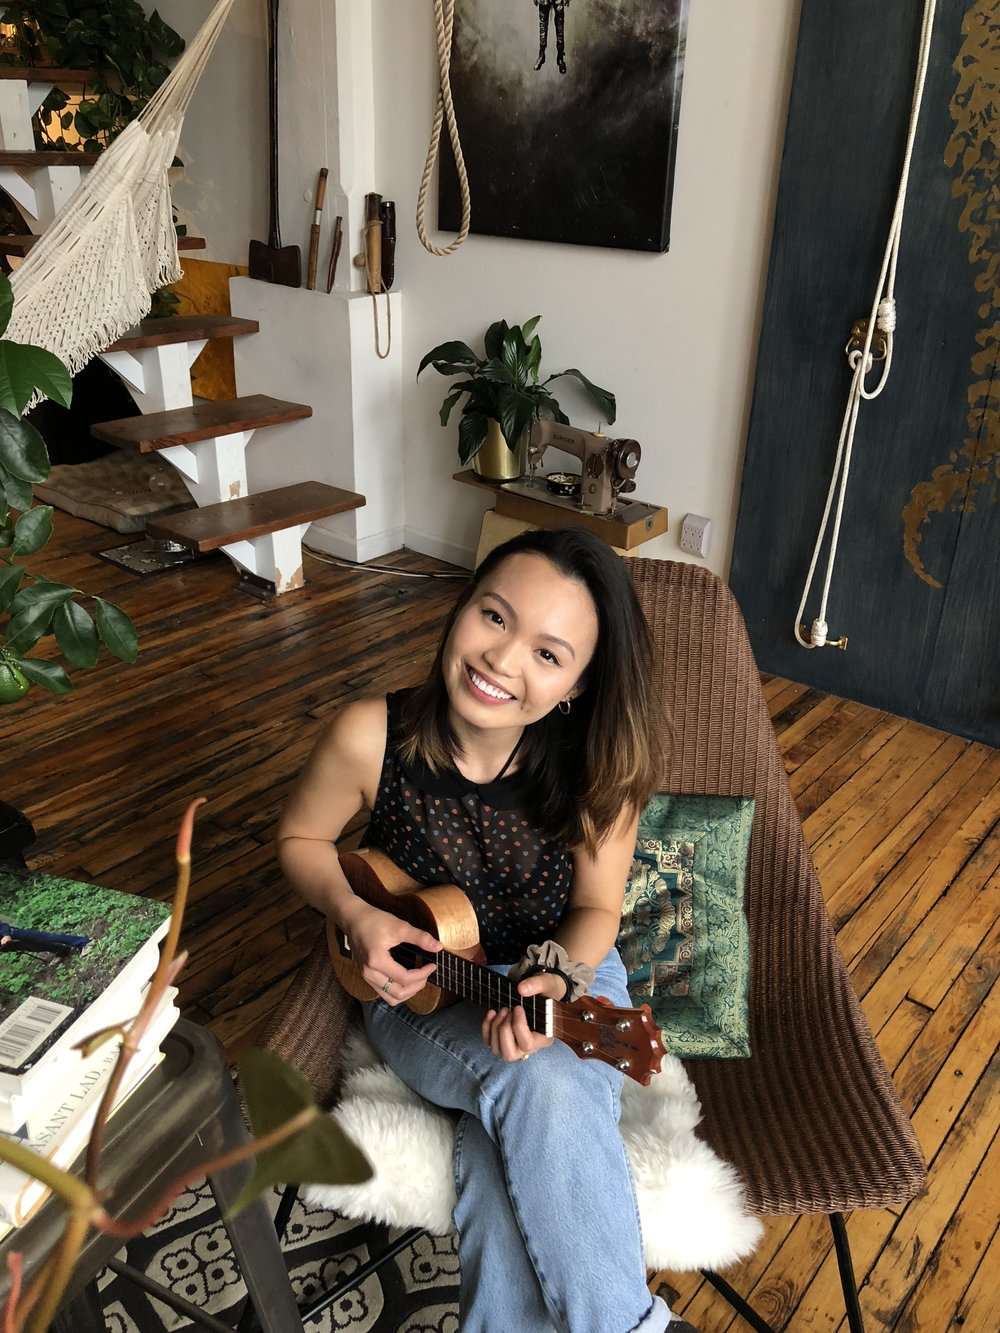 "Nix, 22 - You might not expect an acoustic cover of Nicki Minaj's ""Super Bass"" to go viral, but that's exactly what happened to Nix. The YouTube singer's take on the rap/pop hit has garnered nearly 10 million views since it was posted in 2012. She has also put out ukulele covers of songs from diverse genres, such as a Wiz Khalifa track, and more recently, the Chinese classic ""The Moon Represents My Heart."" Talking to NBC News for Asian Pacific American Heritage Month, the Malaysia native says when she first moved back to New York City as a teen, she barely spoke English and lived in a tiny apartment with her aunt. To cope with a lack of personal space and language proficiency, Nix turned to music as an escape. In college, she felt like an outsider among a campus of white and upper-middle-class students, and now she says she is lucky to travel around the country and perform for AAPI and Asian students. ""I love seeing someone like me/my younger self, a Southeast Asian woman, in my audience,"" Nix said to NBC News. ""In sharing my story through my music, [these students] give me a glimpse of theirs in return. It's a really magical feeling when someone tells you you're the reason they started playing the ukulele. All these things keep me motivated."" — R.Y.Image Courtesy of Nix"